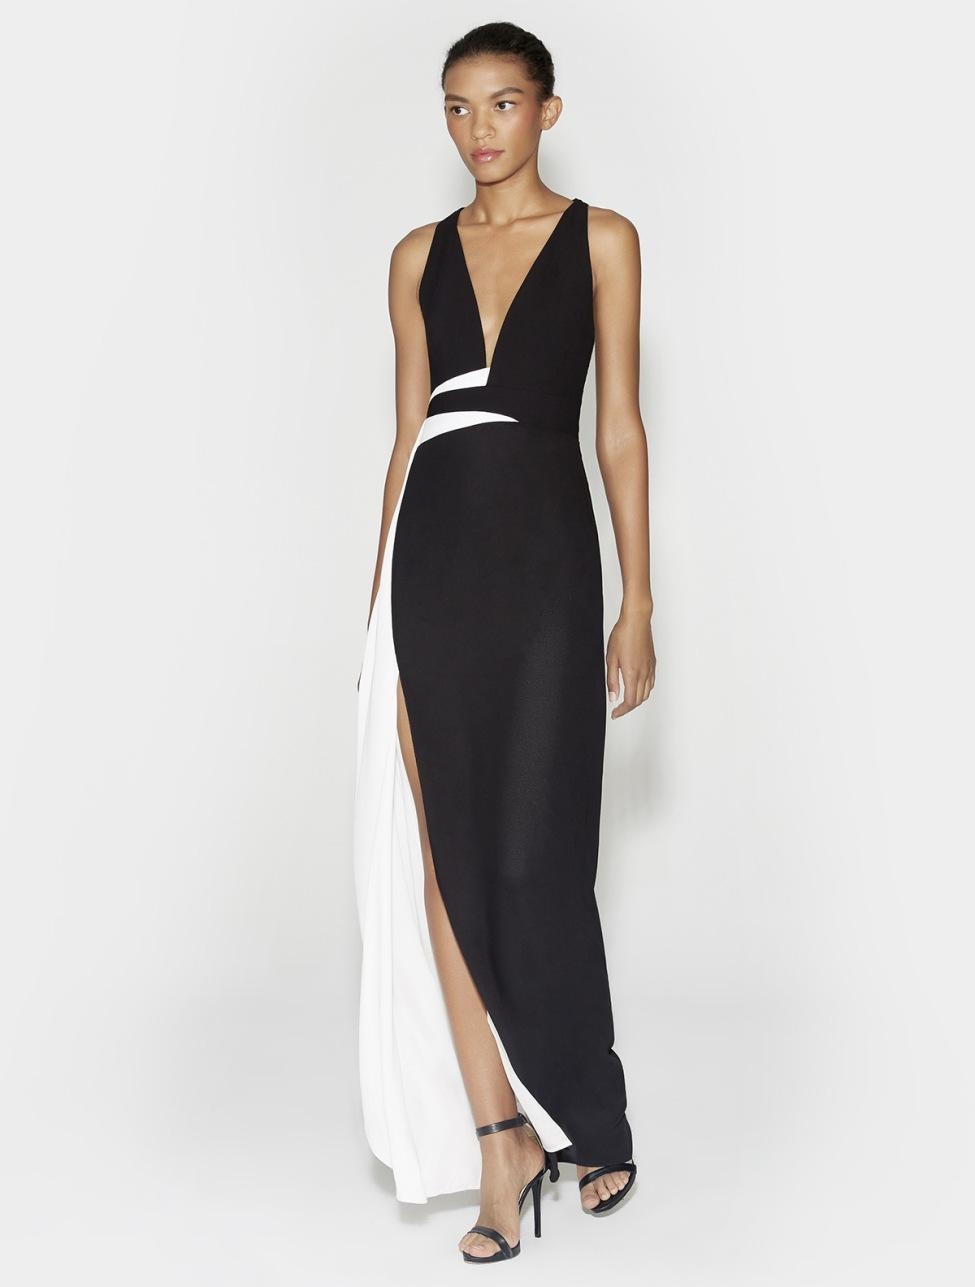 Lyst - Halston Heritage Gown With Contrast Sash in Black